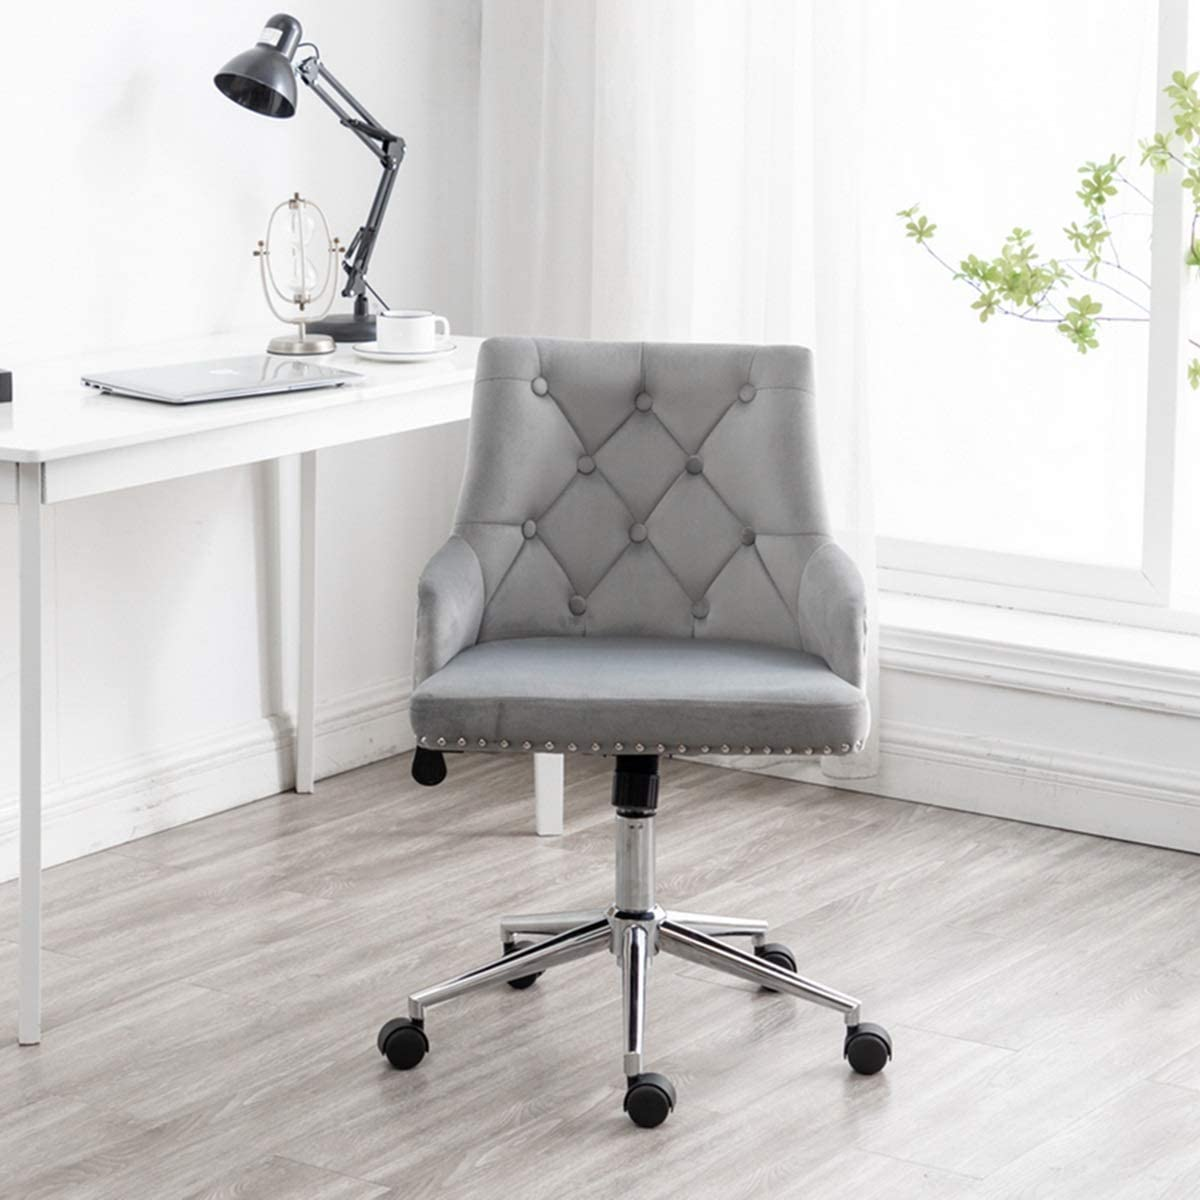 QLANG Office Chair,Desk Chair for Height Home Adjustab Excellence Free Shipping Cheap Bargain Gift